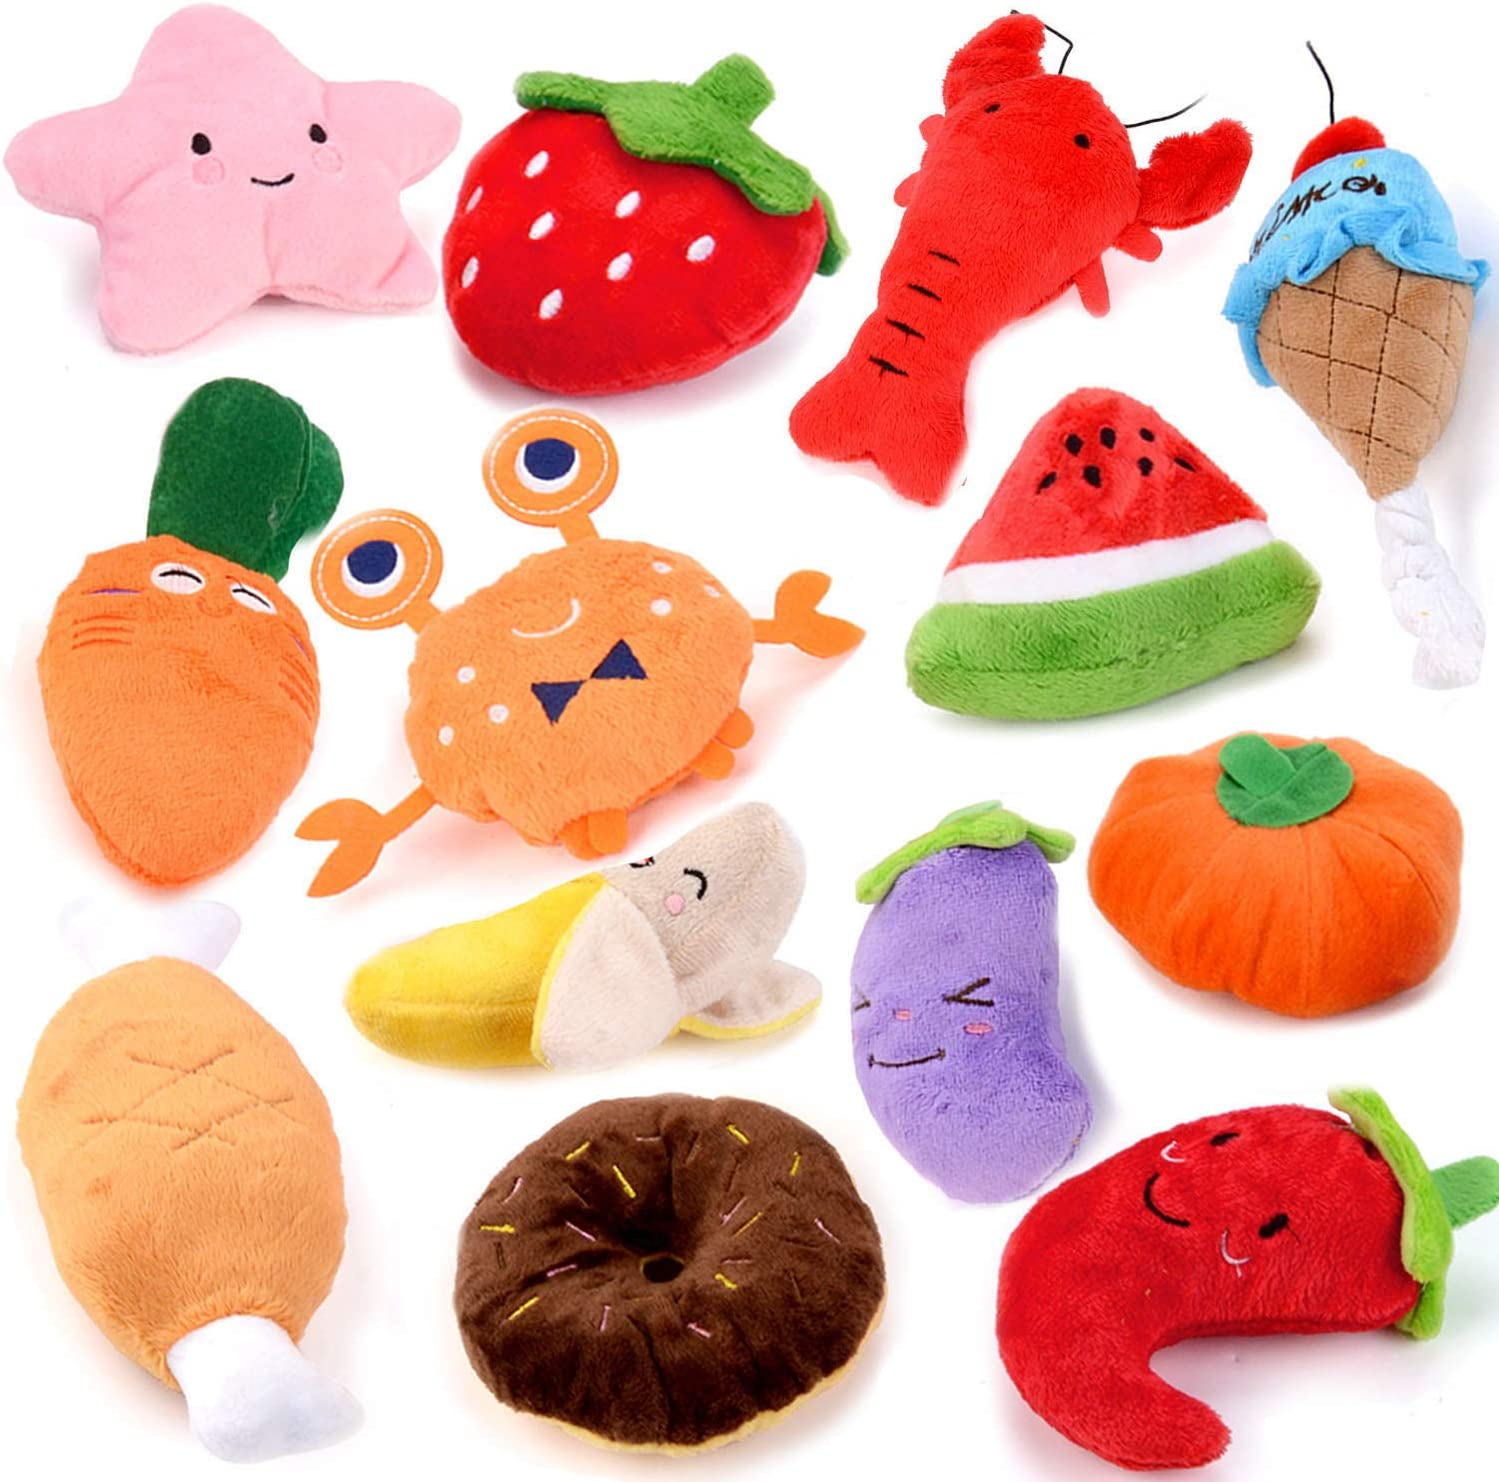 Fansport 13 Pack Dog Squeaky Toys Cute Plush Toys Stuffed Fruits Vegetables Dog chew Toy Squeaky Dog Toys for Puppy Small Dog Pets